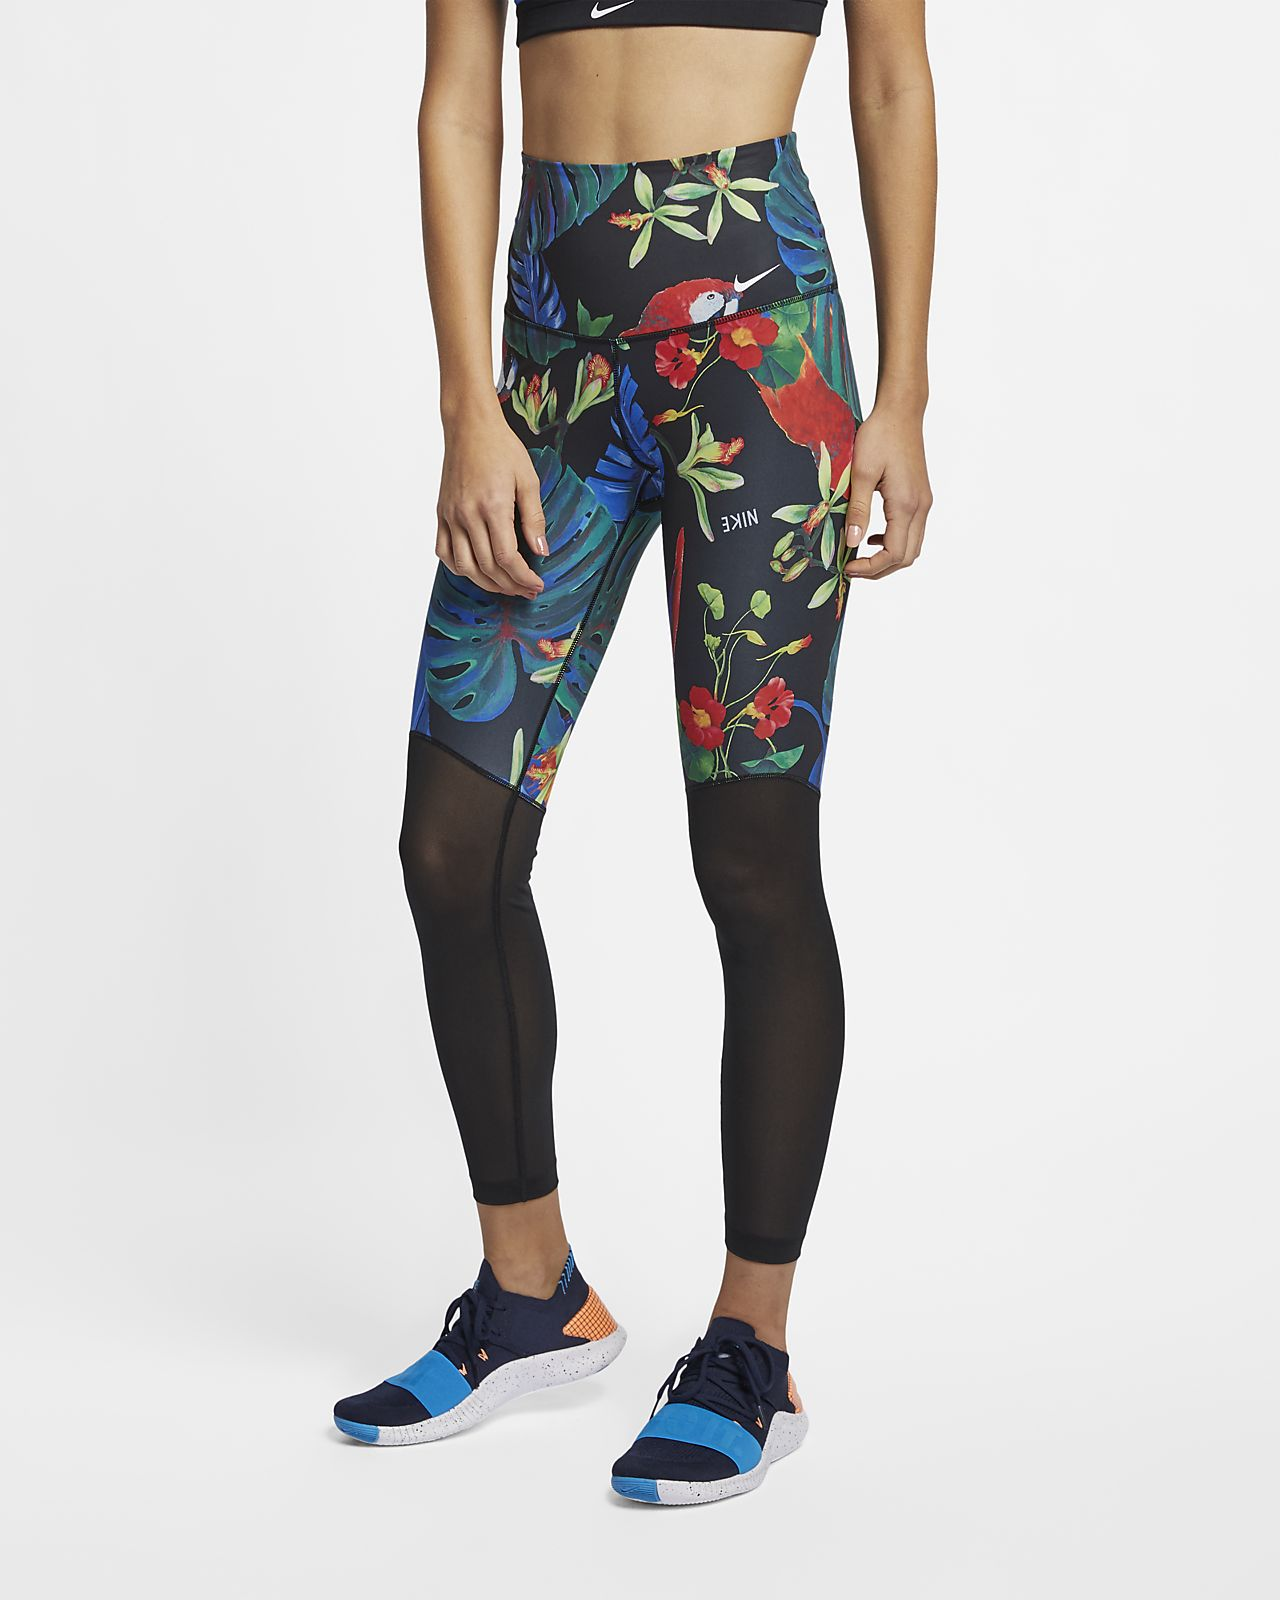 Nike Power Women's 7/8 Training Tights